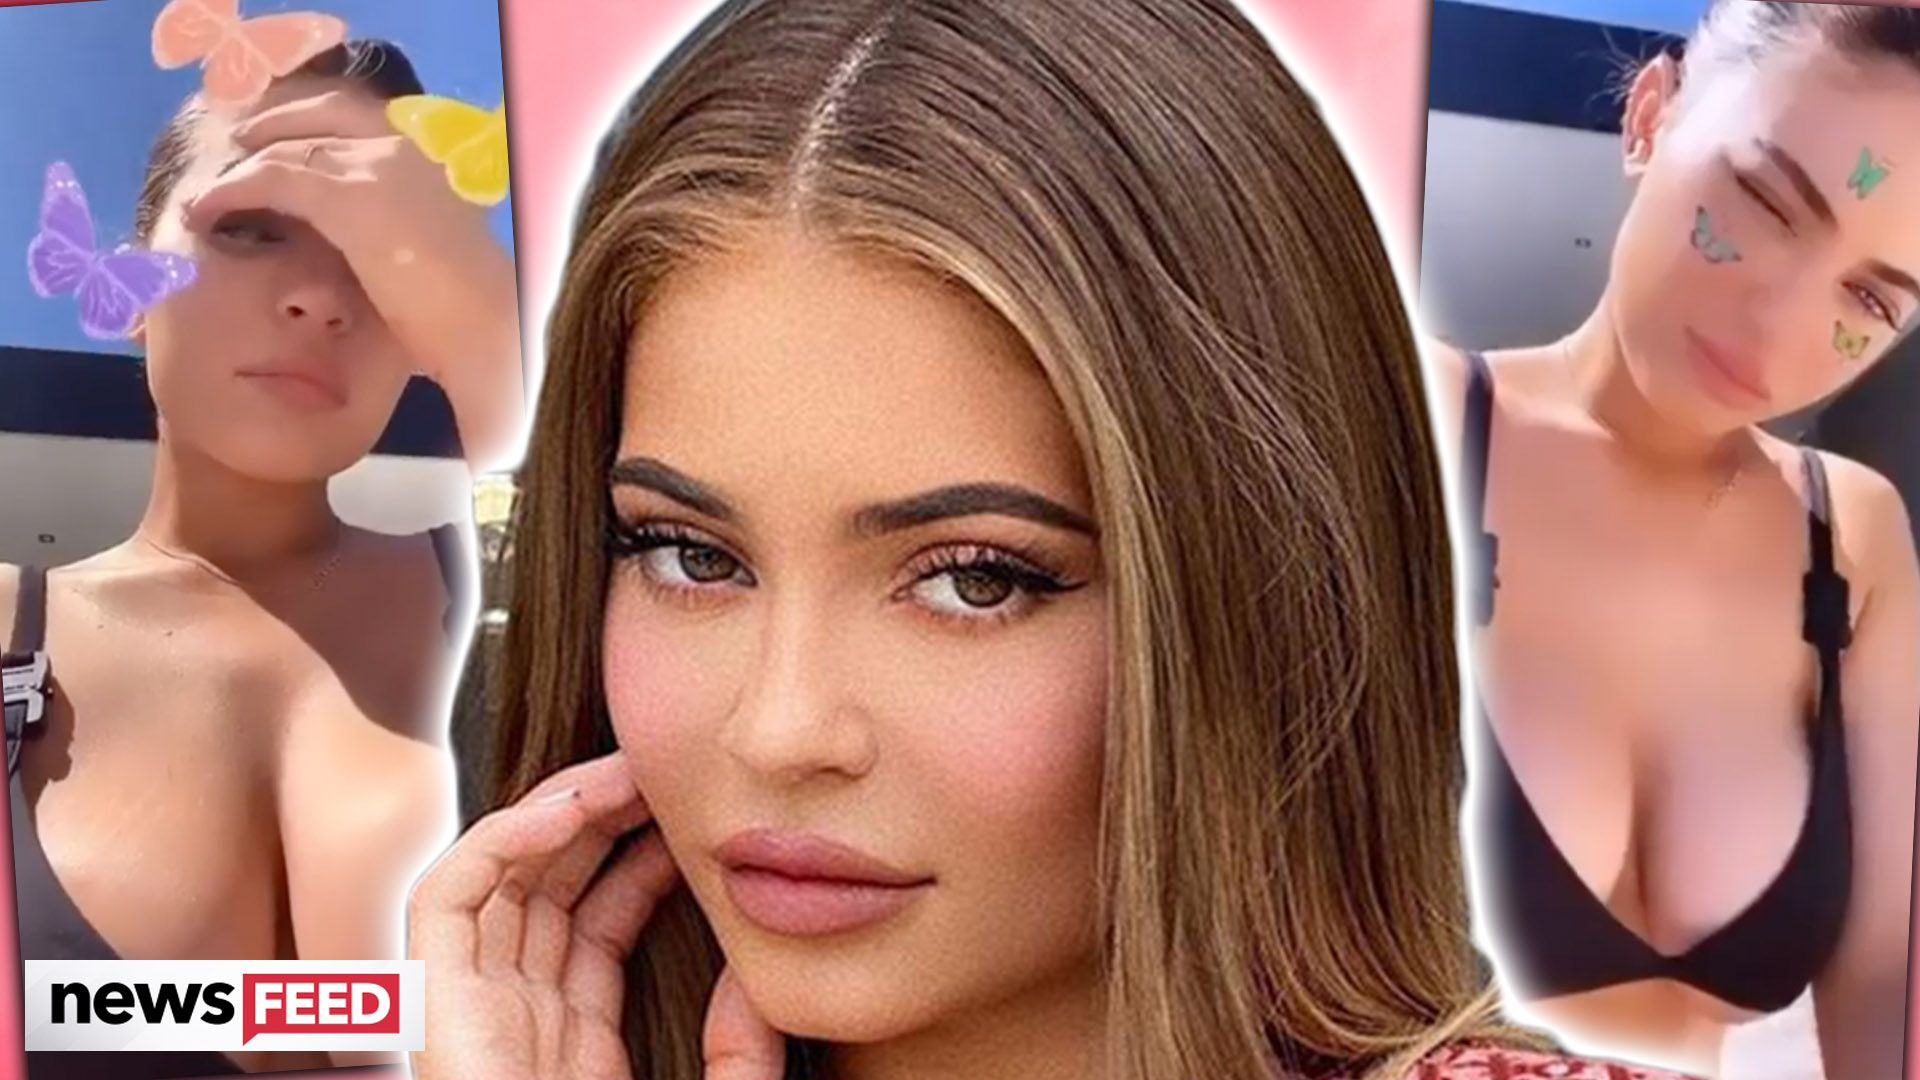 Chicago West Just Complimented Stormi Webster's Hair in an Adorable Video